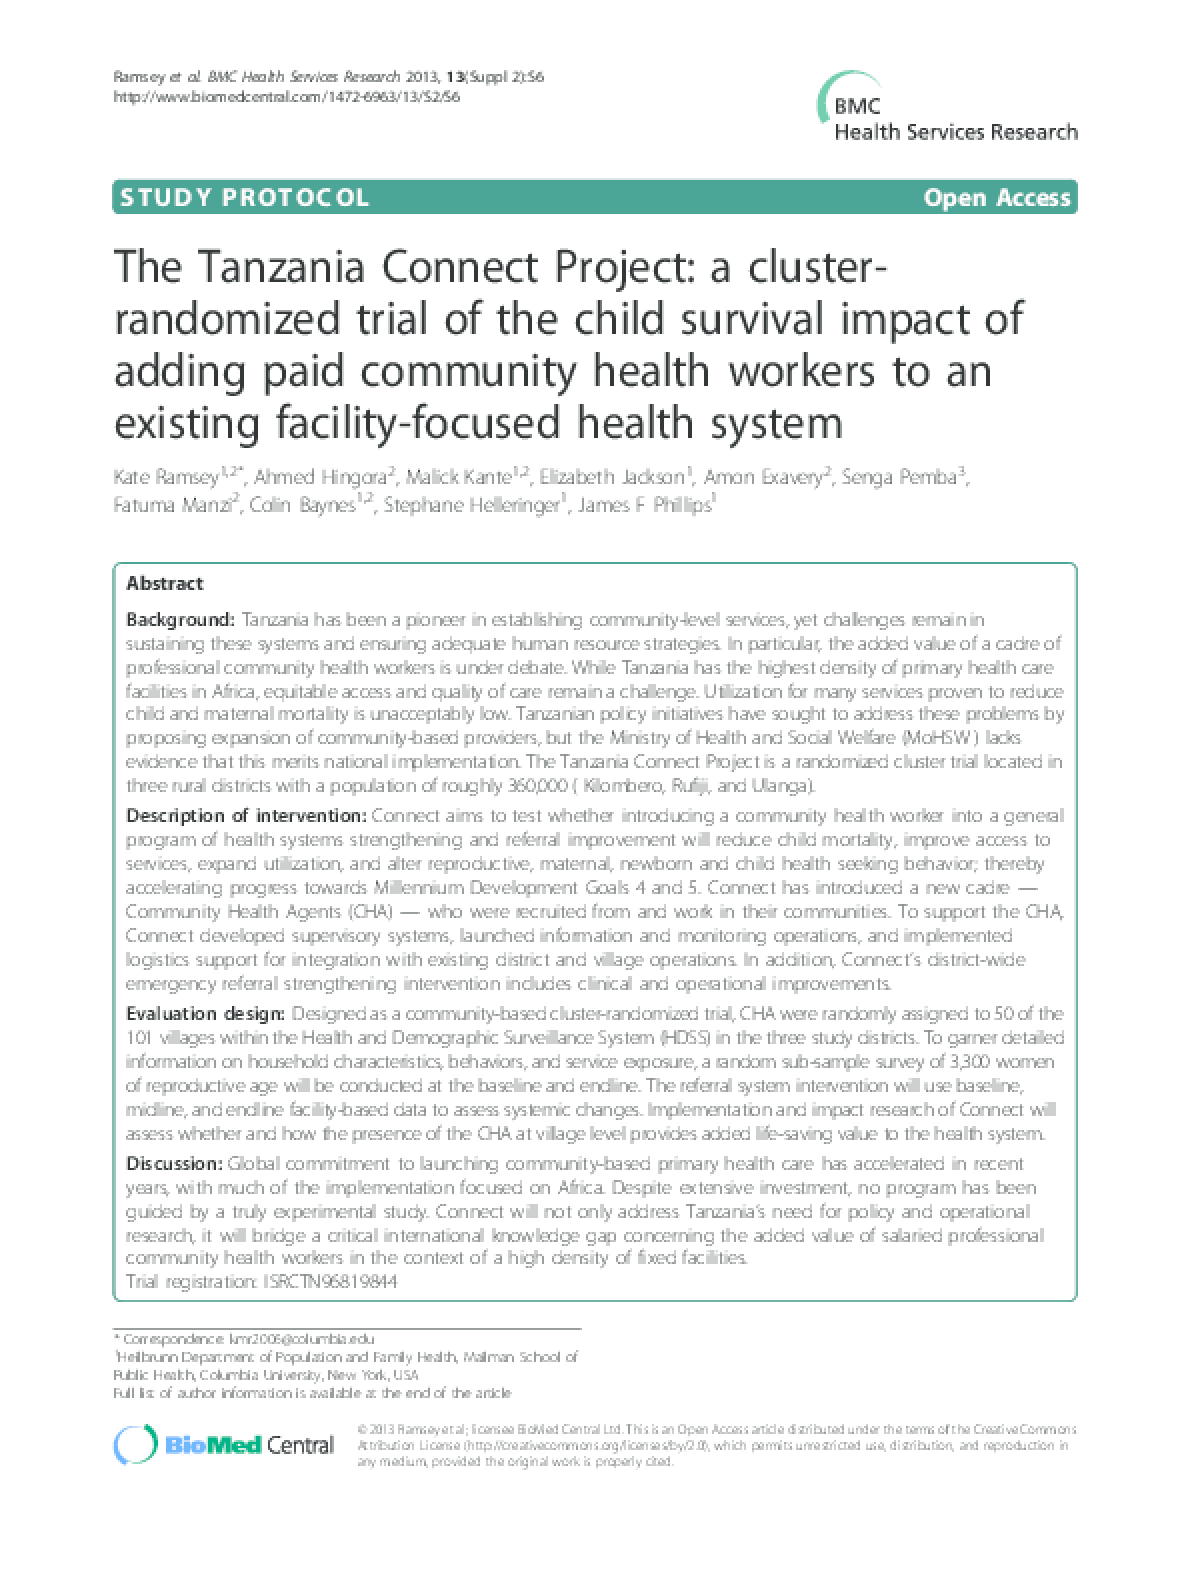 The Tanzania Connect Project: a Cluster-Randomized Trial of the Child Survival Impact of Adding Paid Community Health Workers to an Existing Facility-Focused Health System